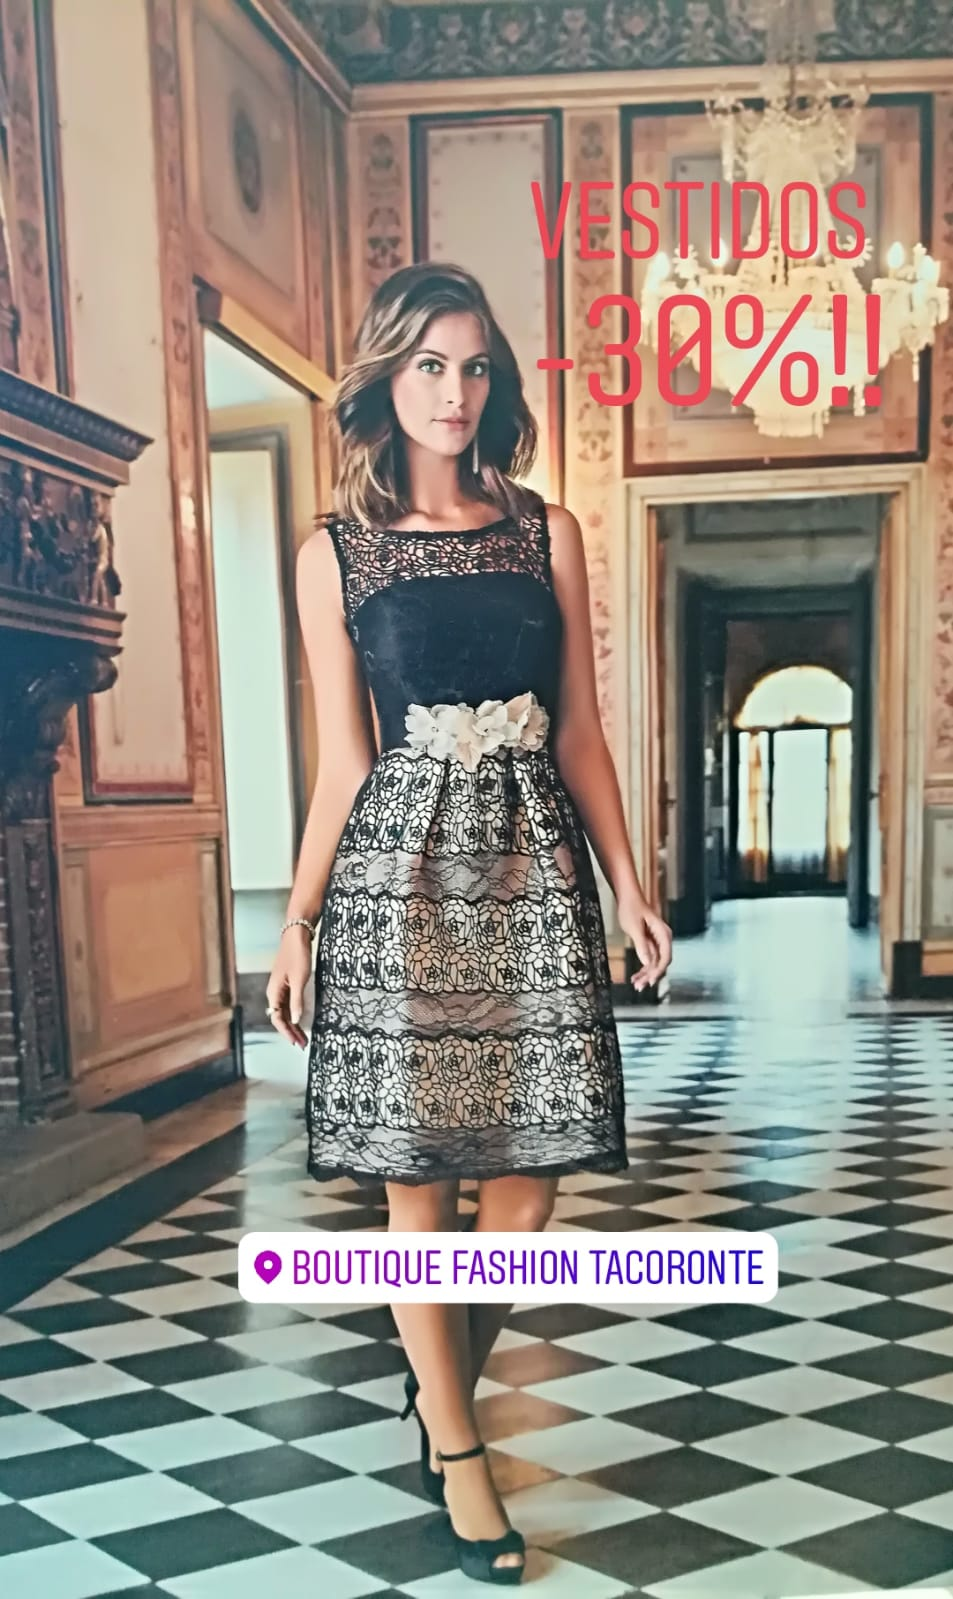 Boutique Fashion Tacoronte